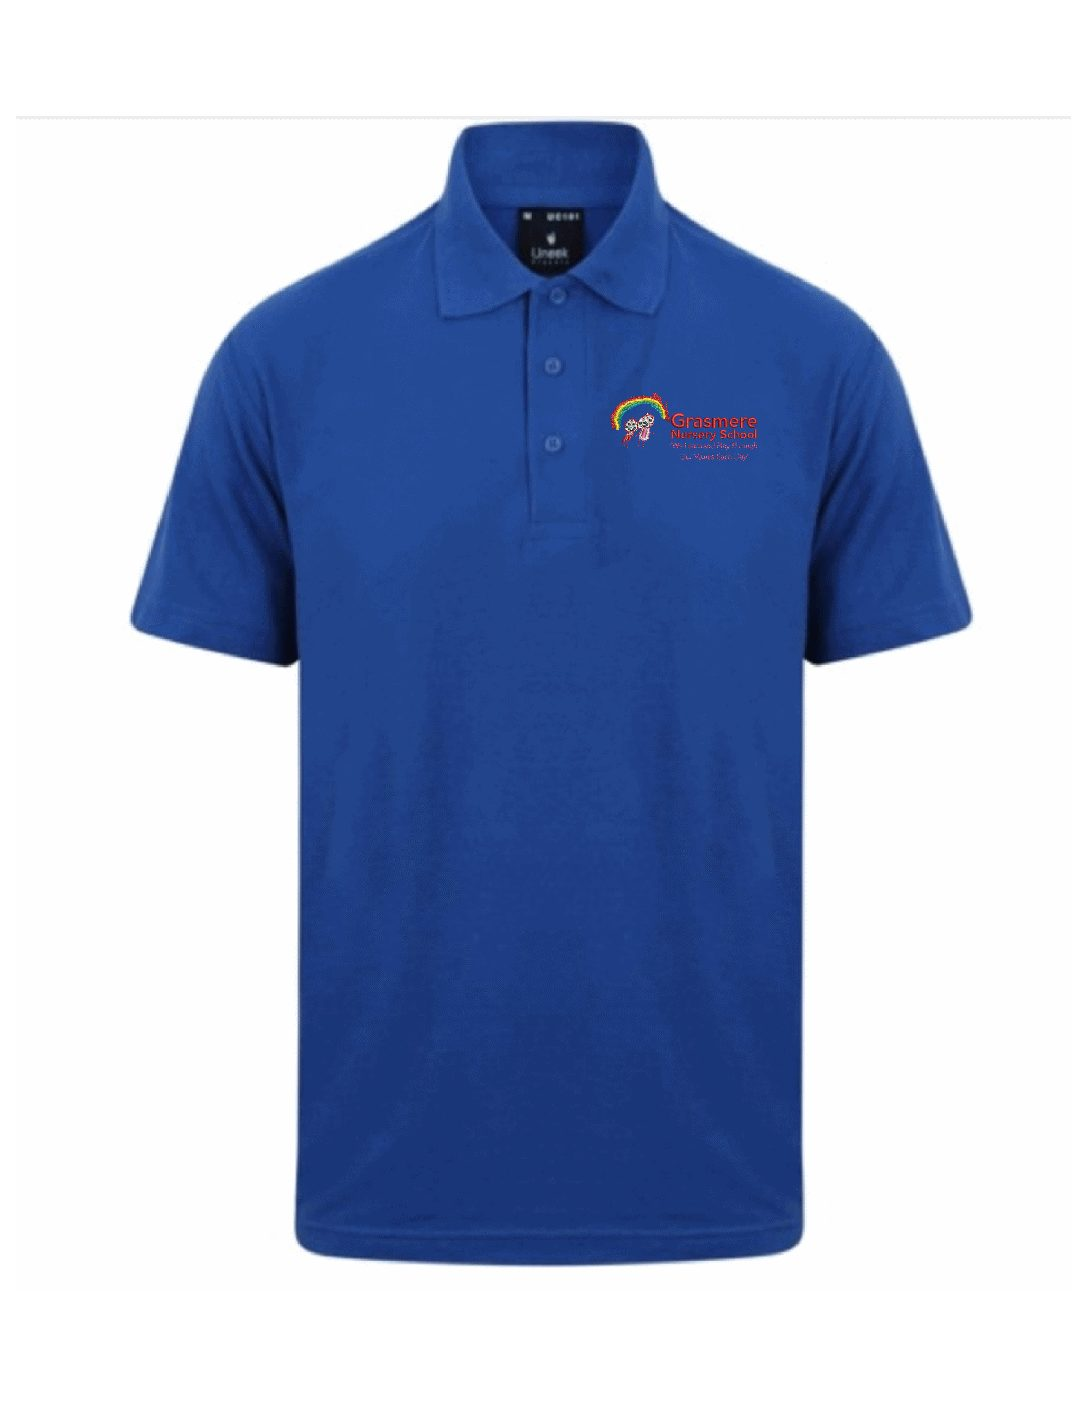 Grasmere polo shirt